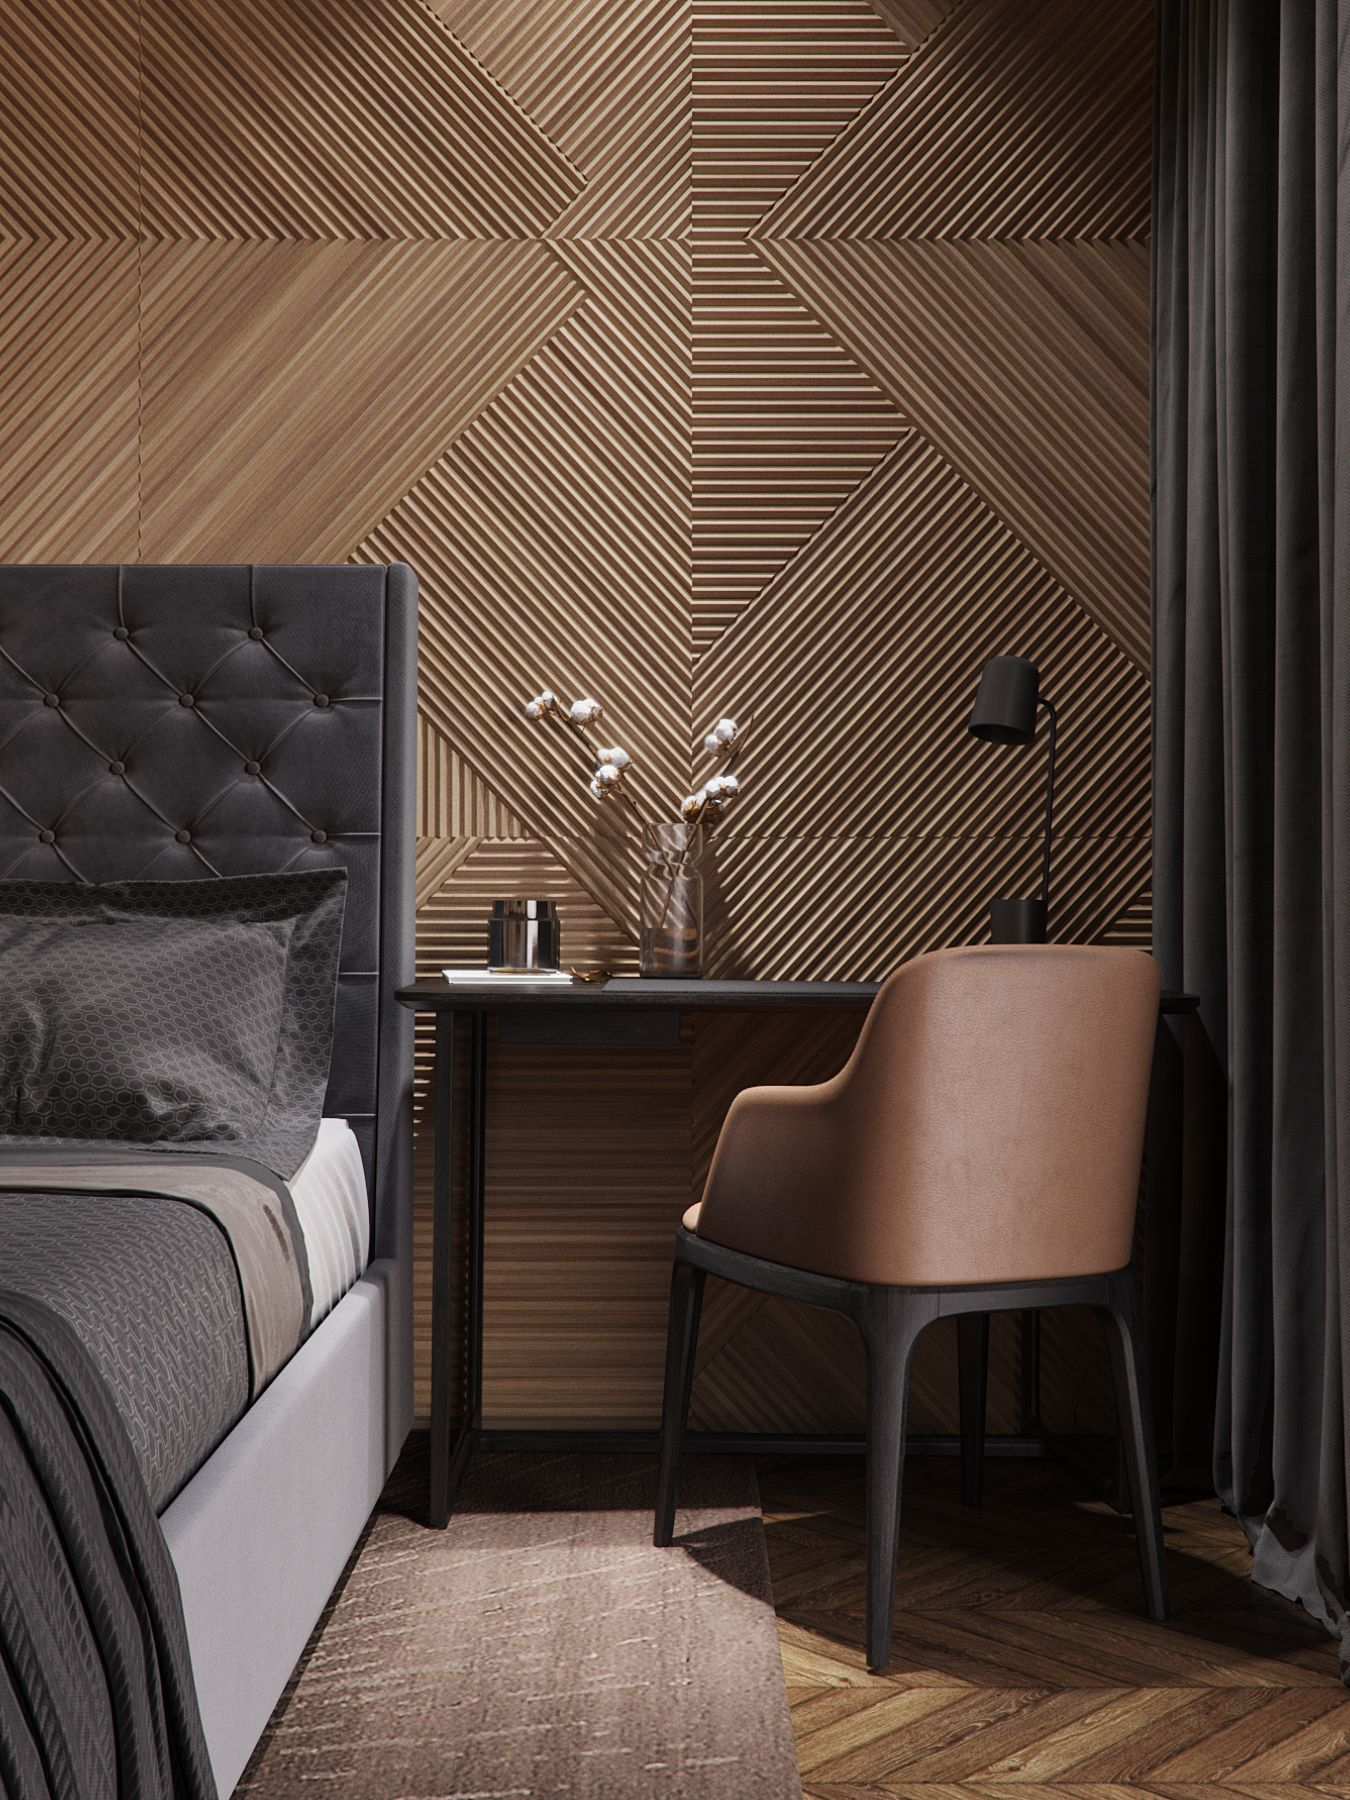 Pin By Ameera On Restaurant Design Hotel Room Design Bedroom Interior Interior Design